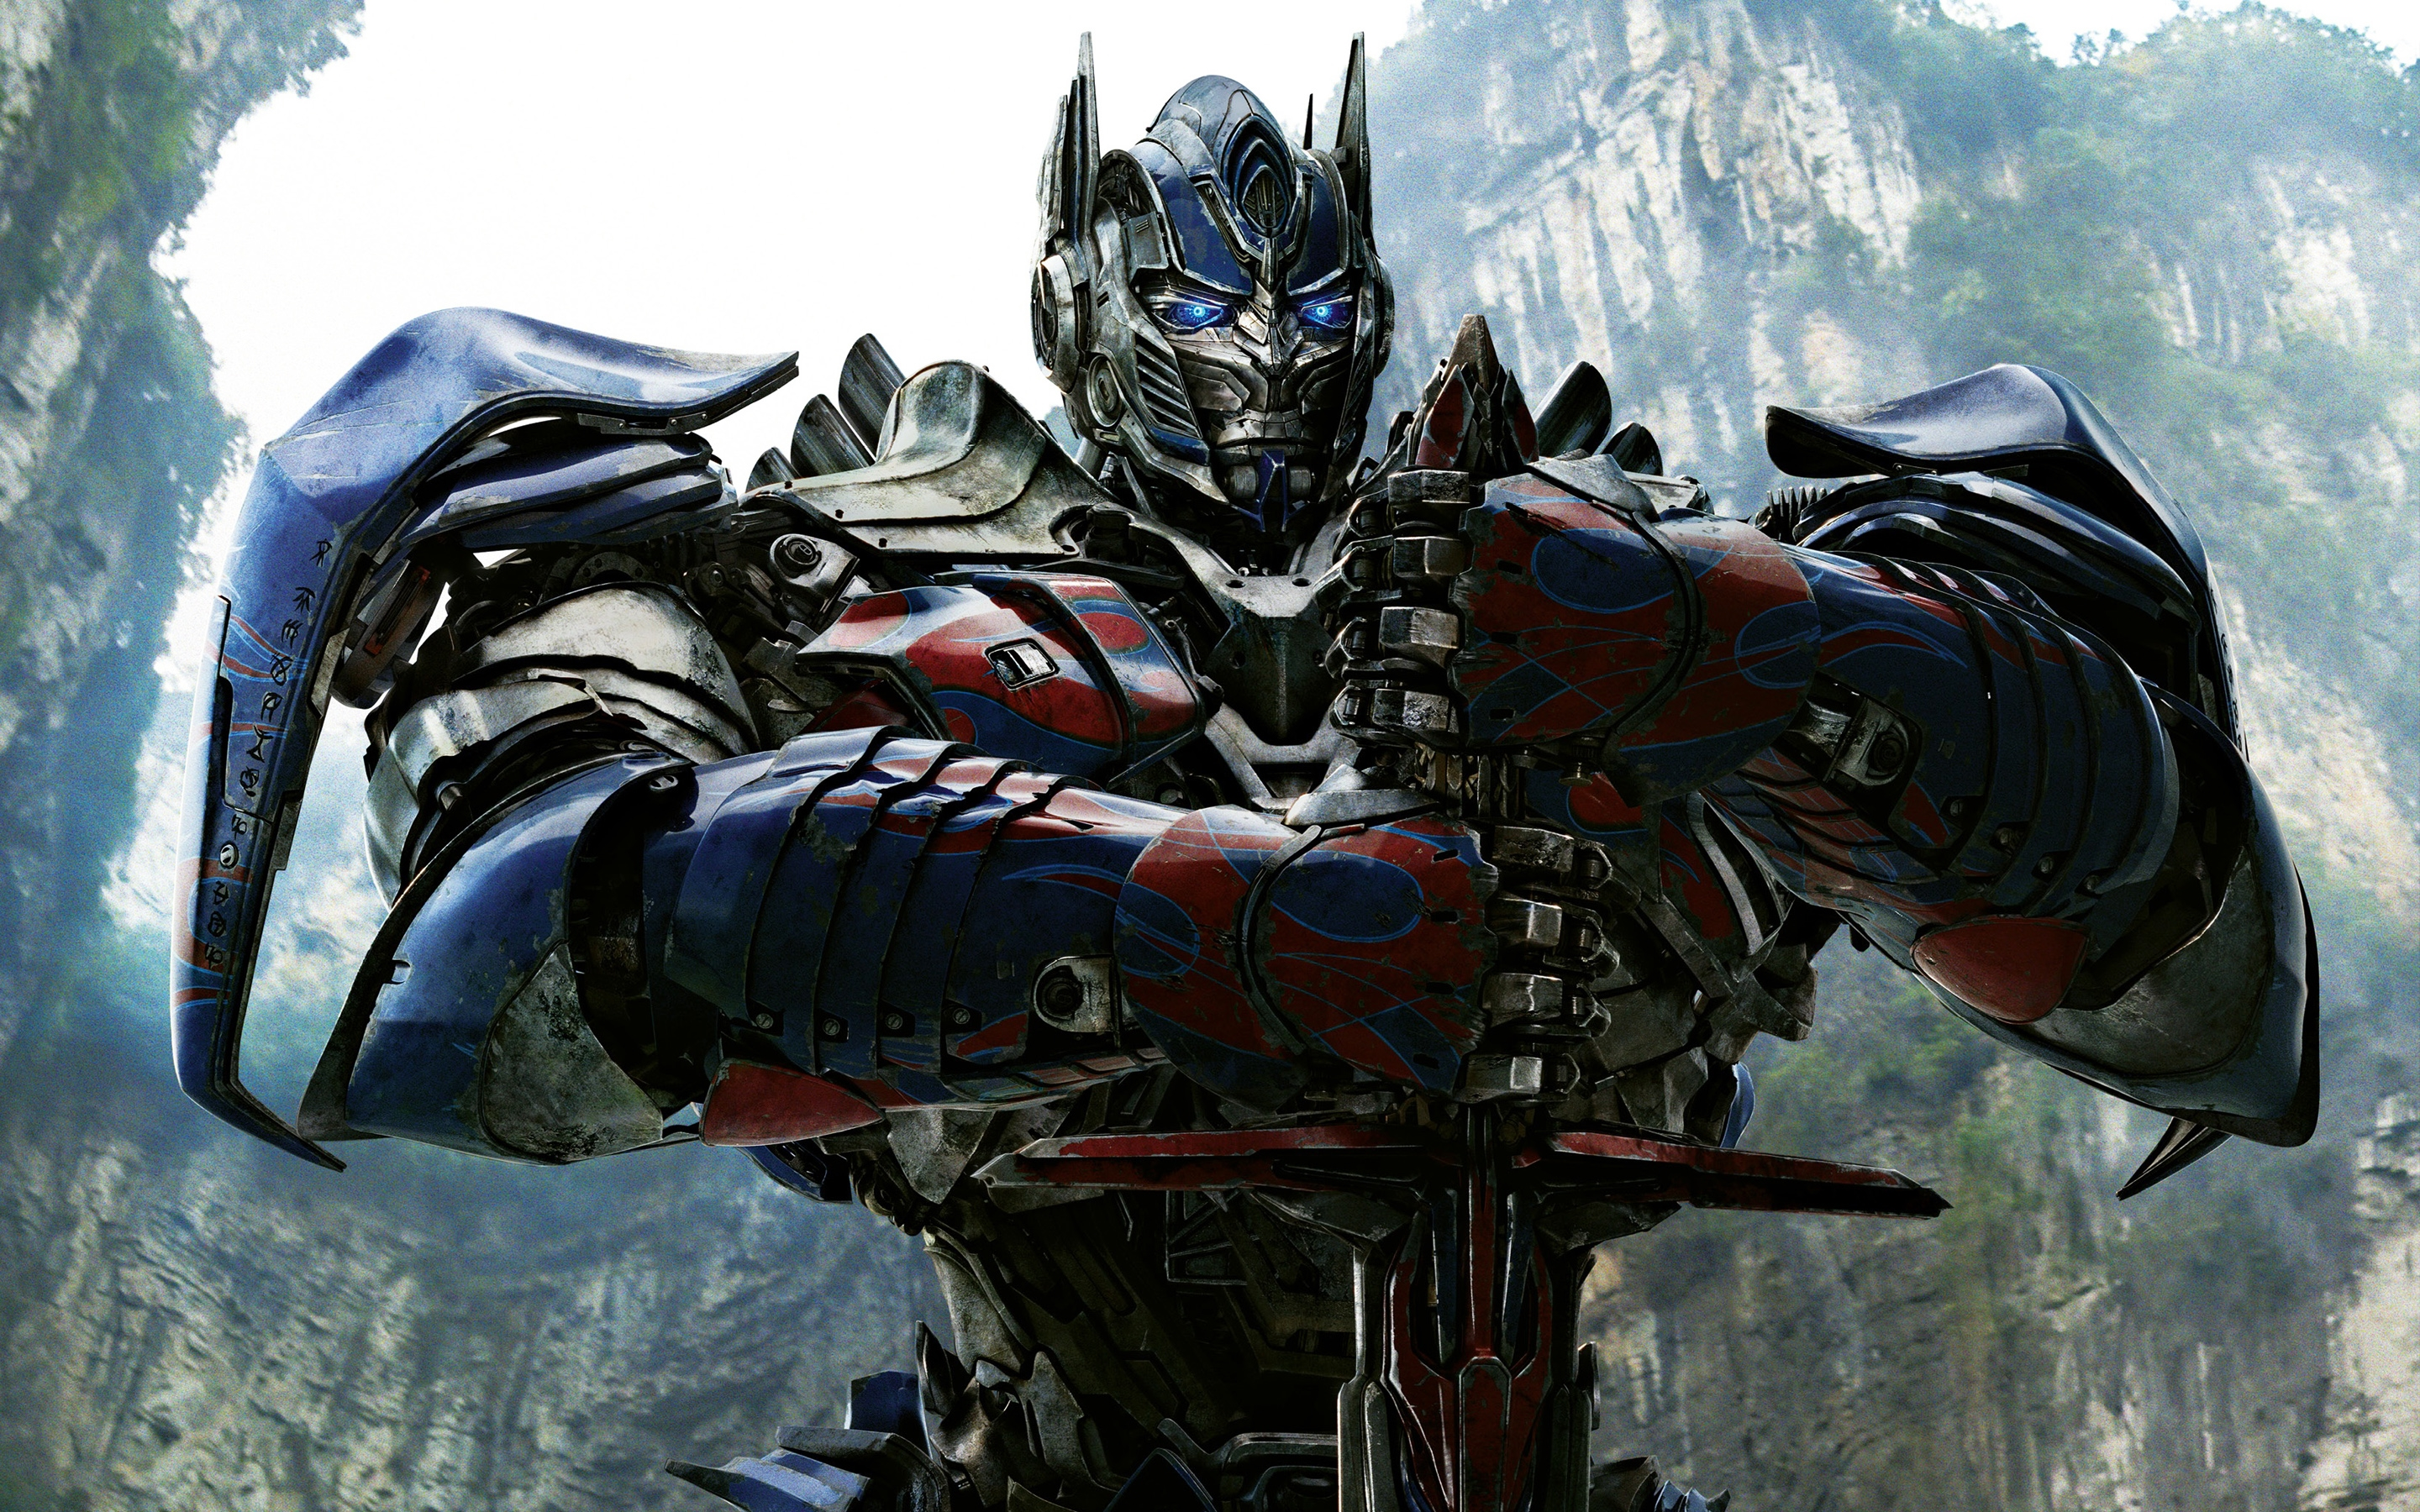 optimus prime in transformers 4 wide